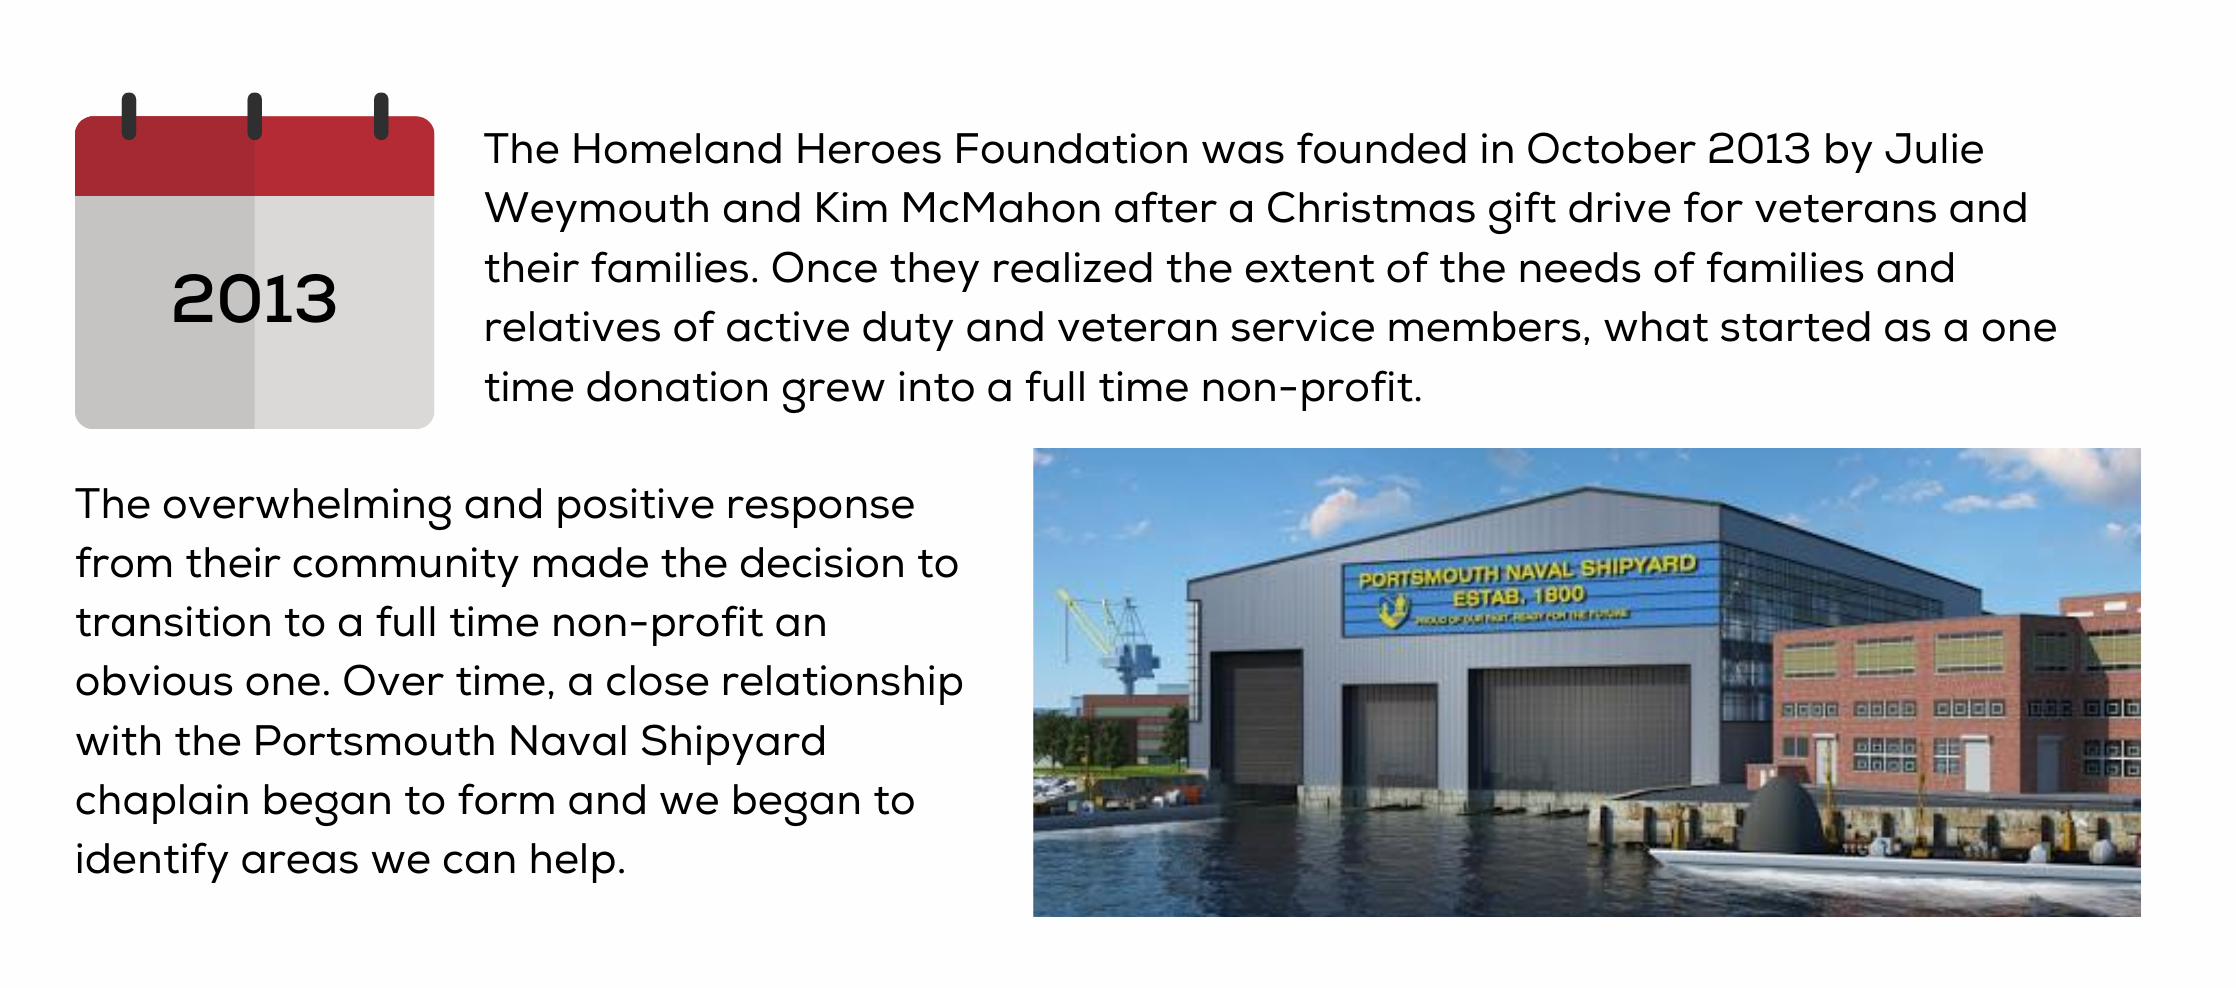 The Homeland Heroes Foundation was founded in October 2013 by Julie Weymouth and Kim McMahon after a Christmas gift drive for veterans and their families. Once they realized the extent of the needs of families and relatives of active duty and veteran service members, what started as a one time donation grew into a full time non-profit. The overwhelming and positive response from their community made the decision to transition to a full time non-profit an obvious one. Over time, a close relationship with the Portsmouth Naval Shipyard chaplain began to form and we began to identify areas we can help.